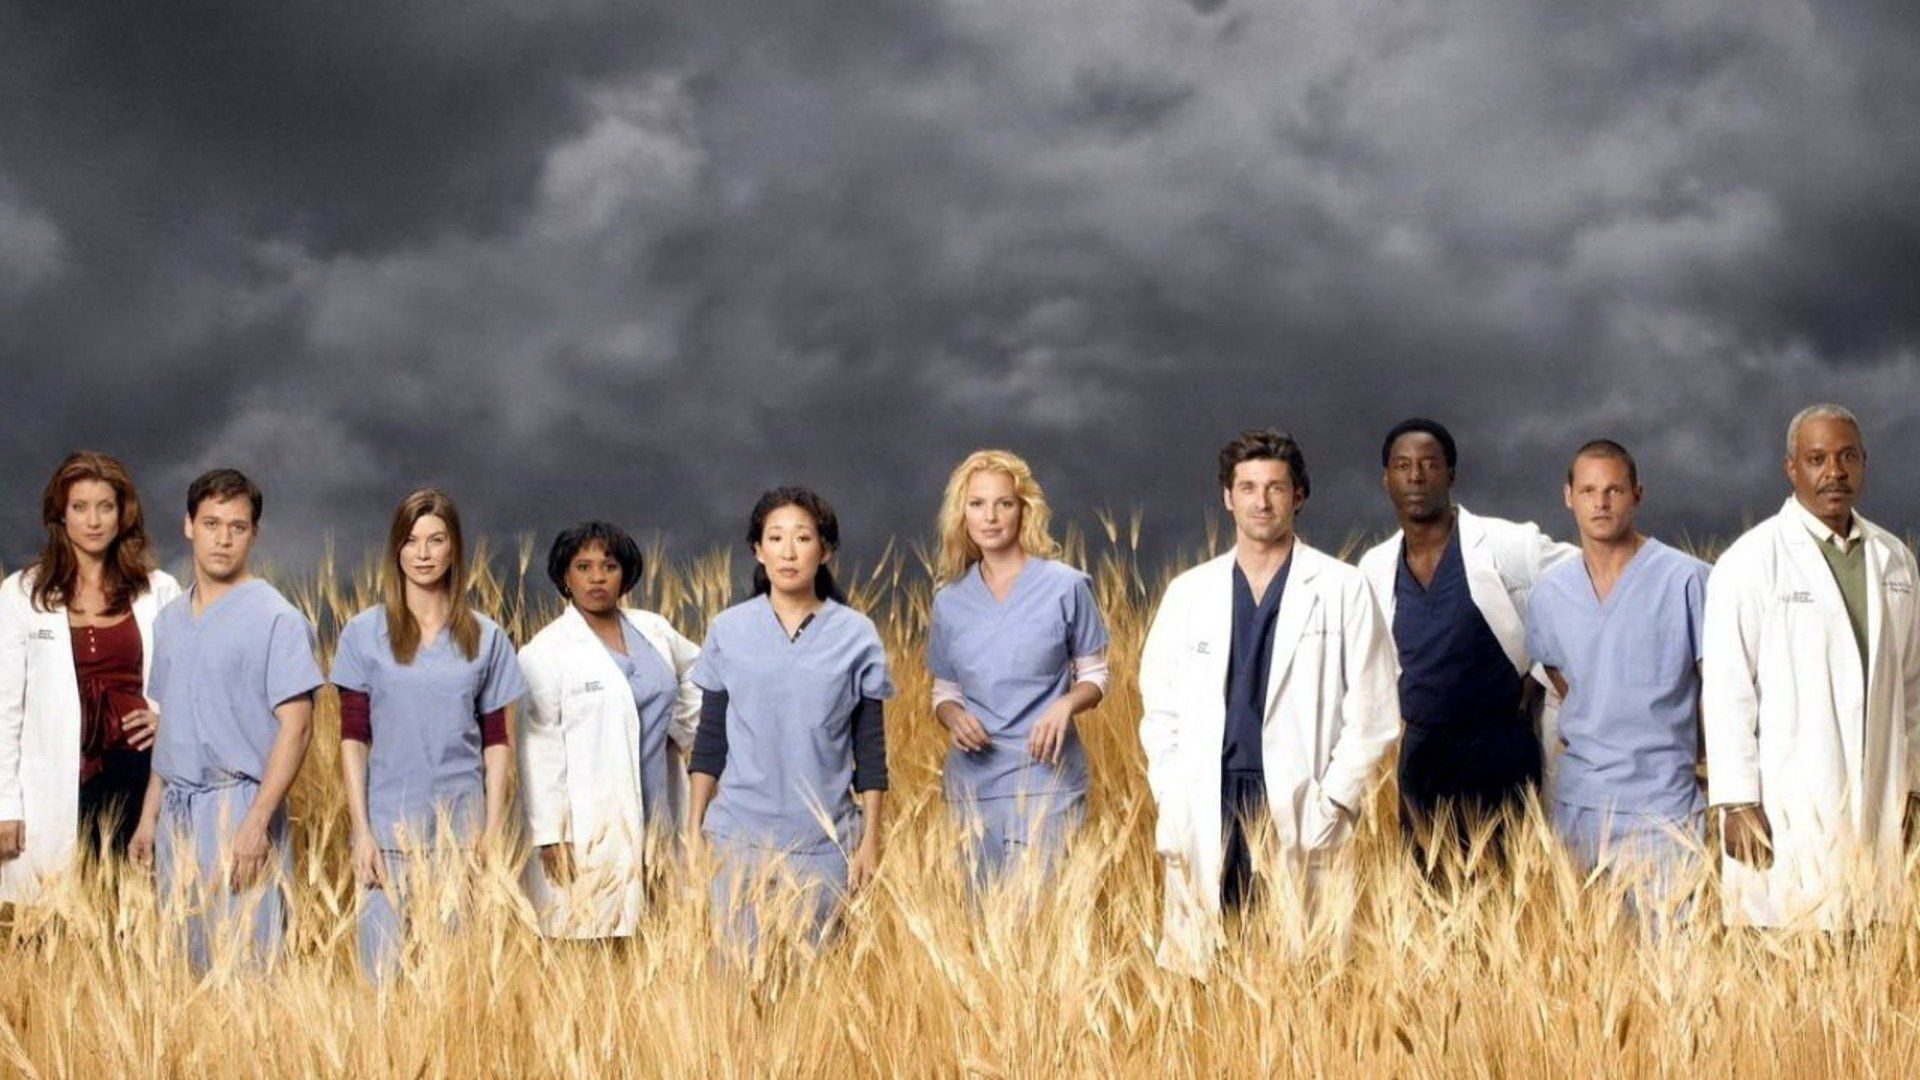 Fullwatch Greys Anatomy Season Episode Fullepisode